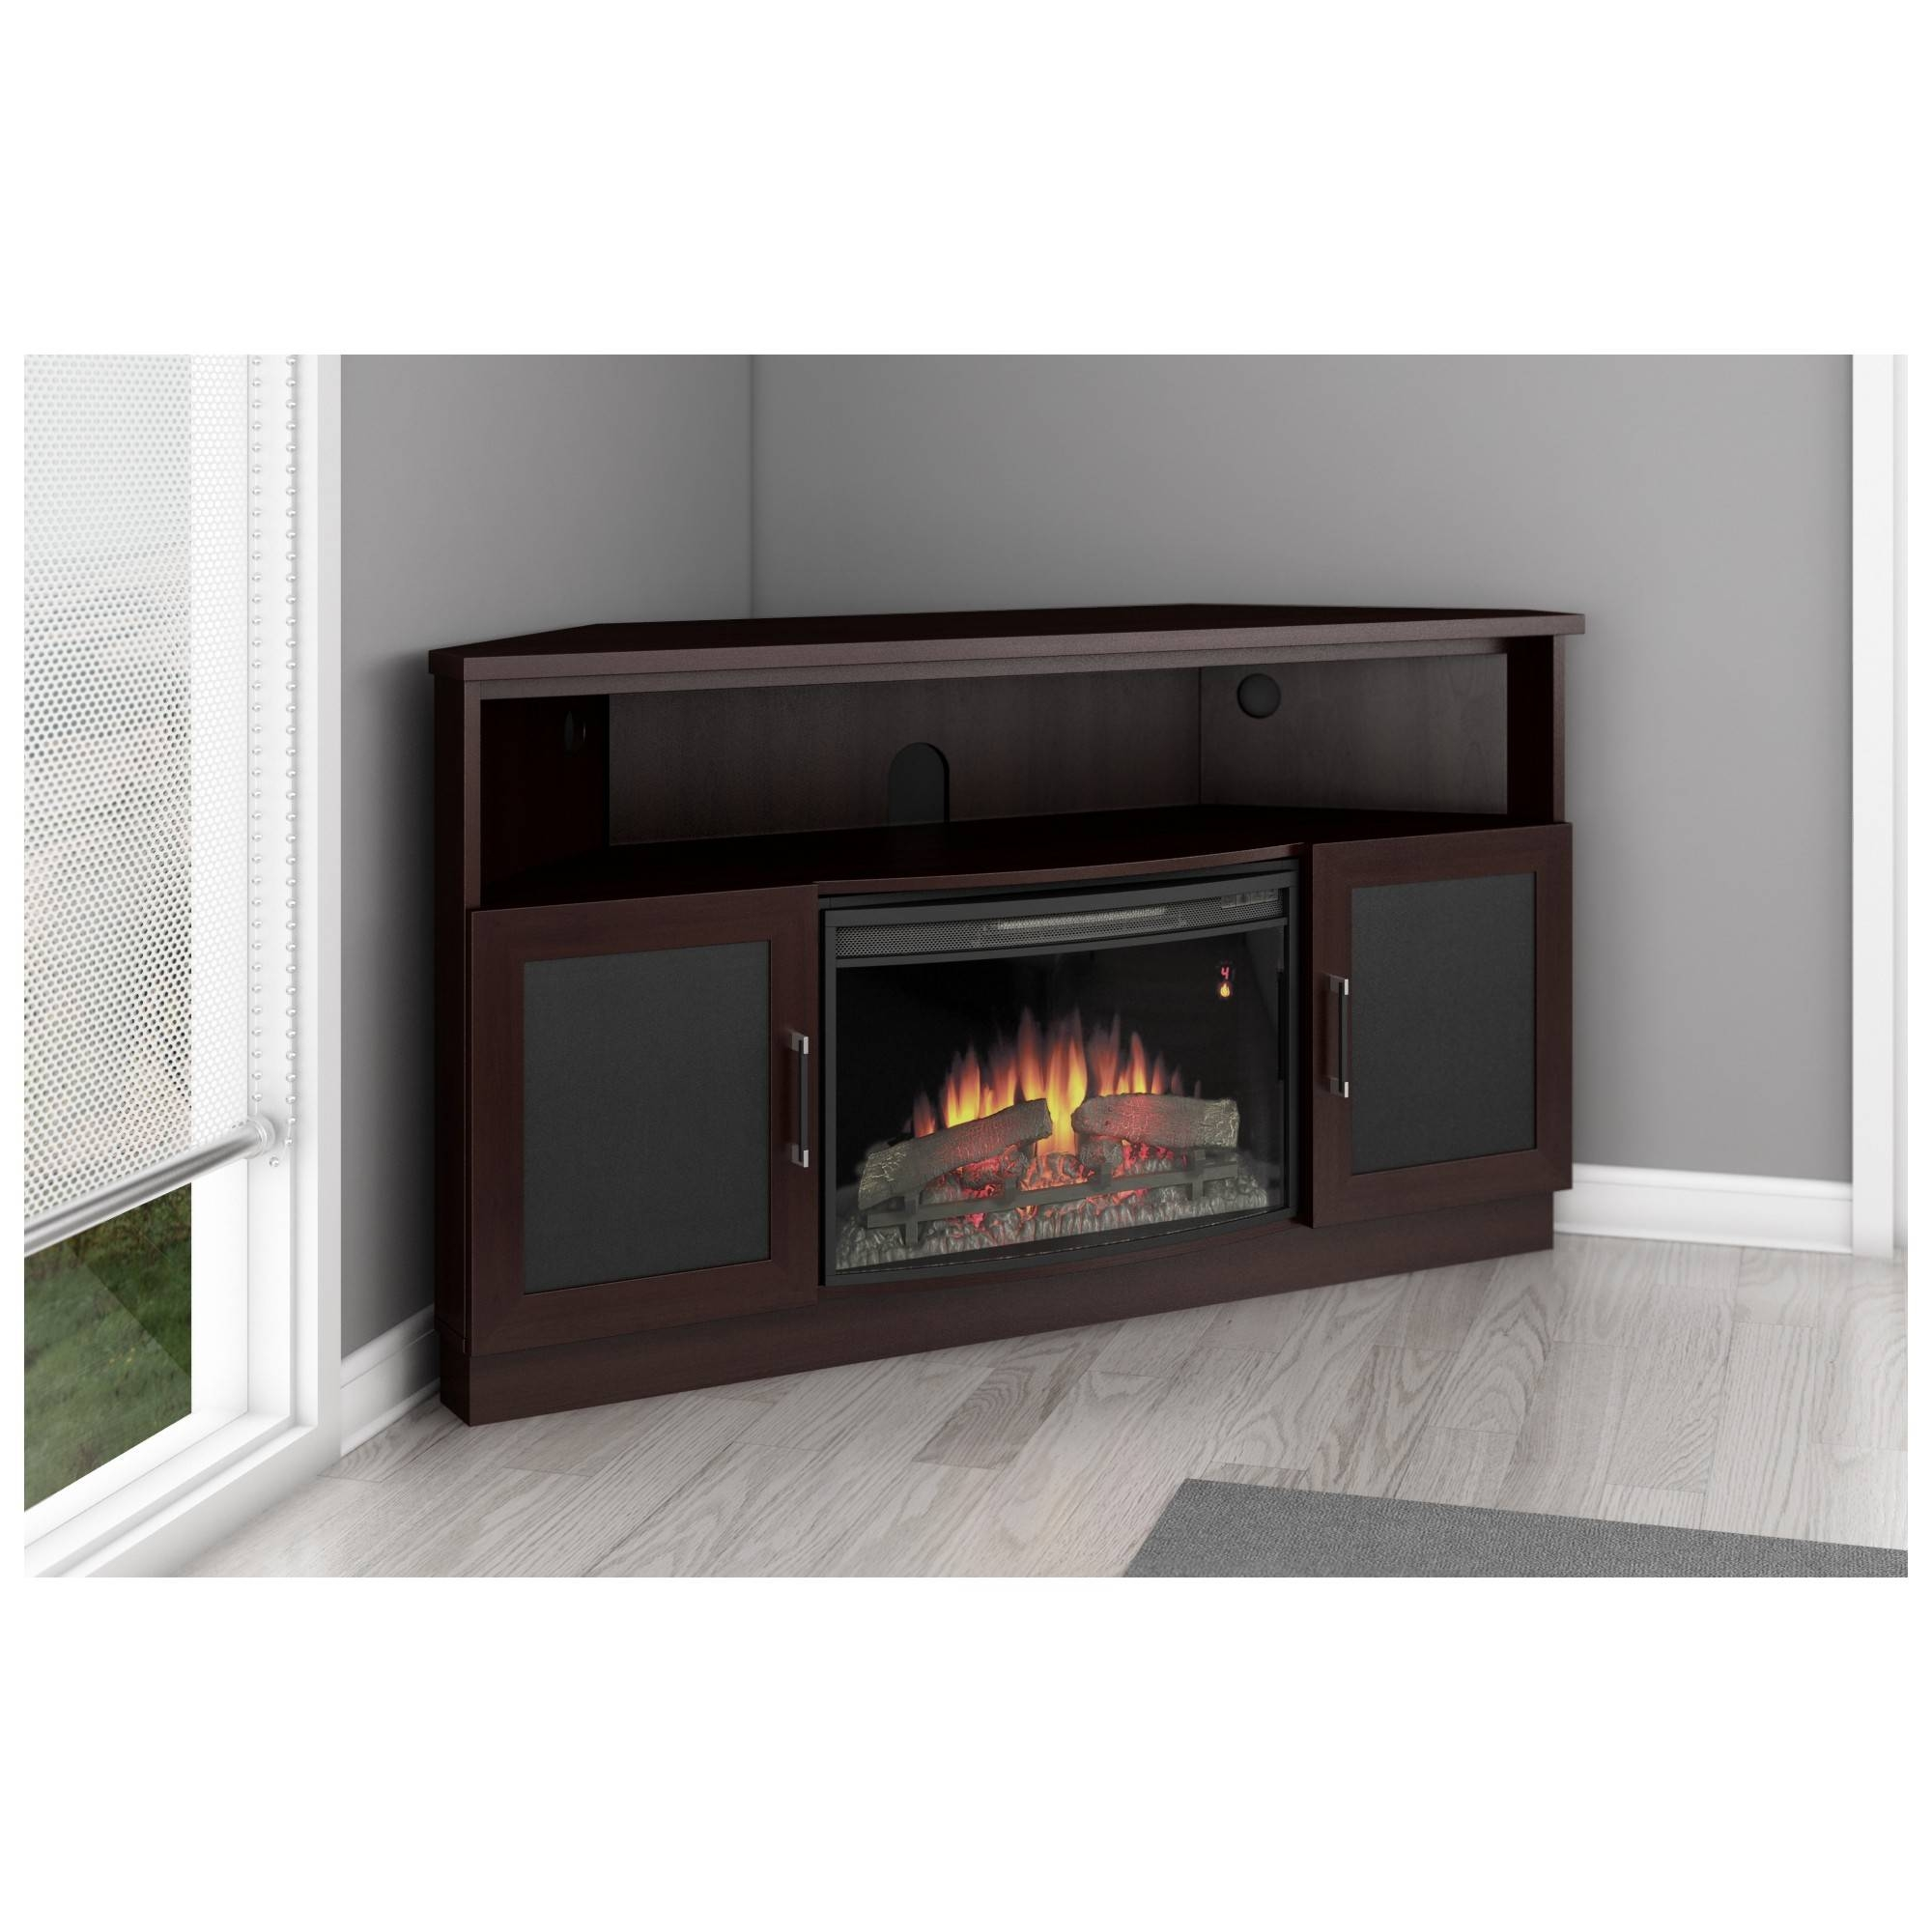 "Furnitech Ft60Cccfb 60"" Tv Stand Contemporary Corner Cabinet W for Corner Tv Stands for 60 Inch Tv (Image 8 of 15)"